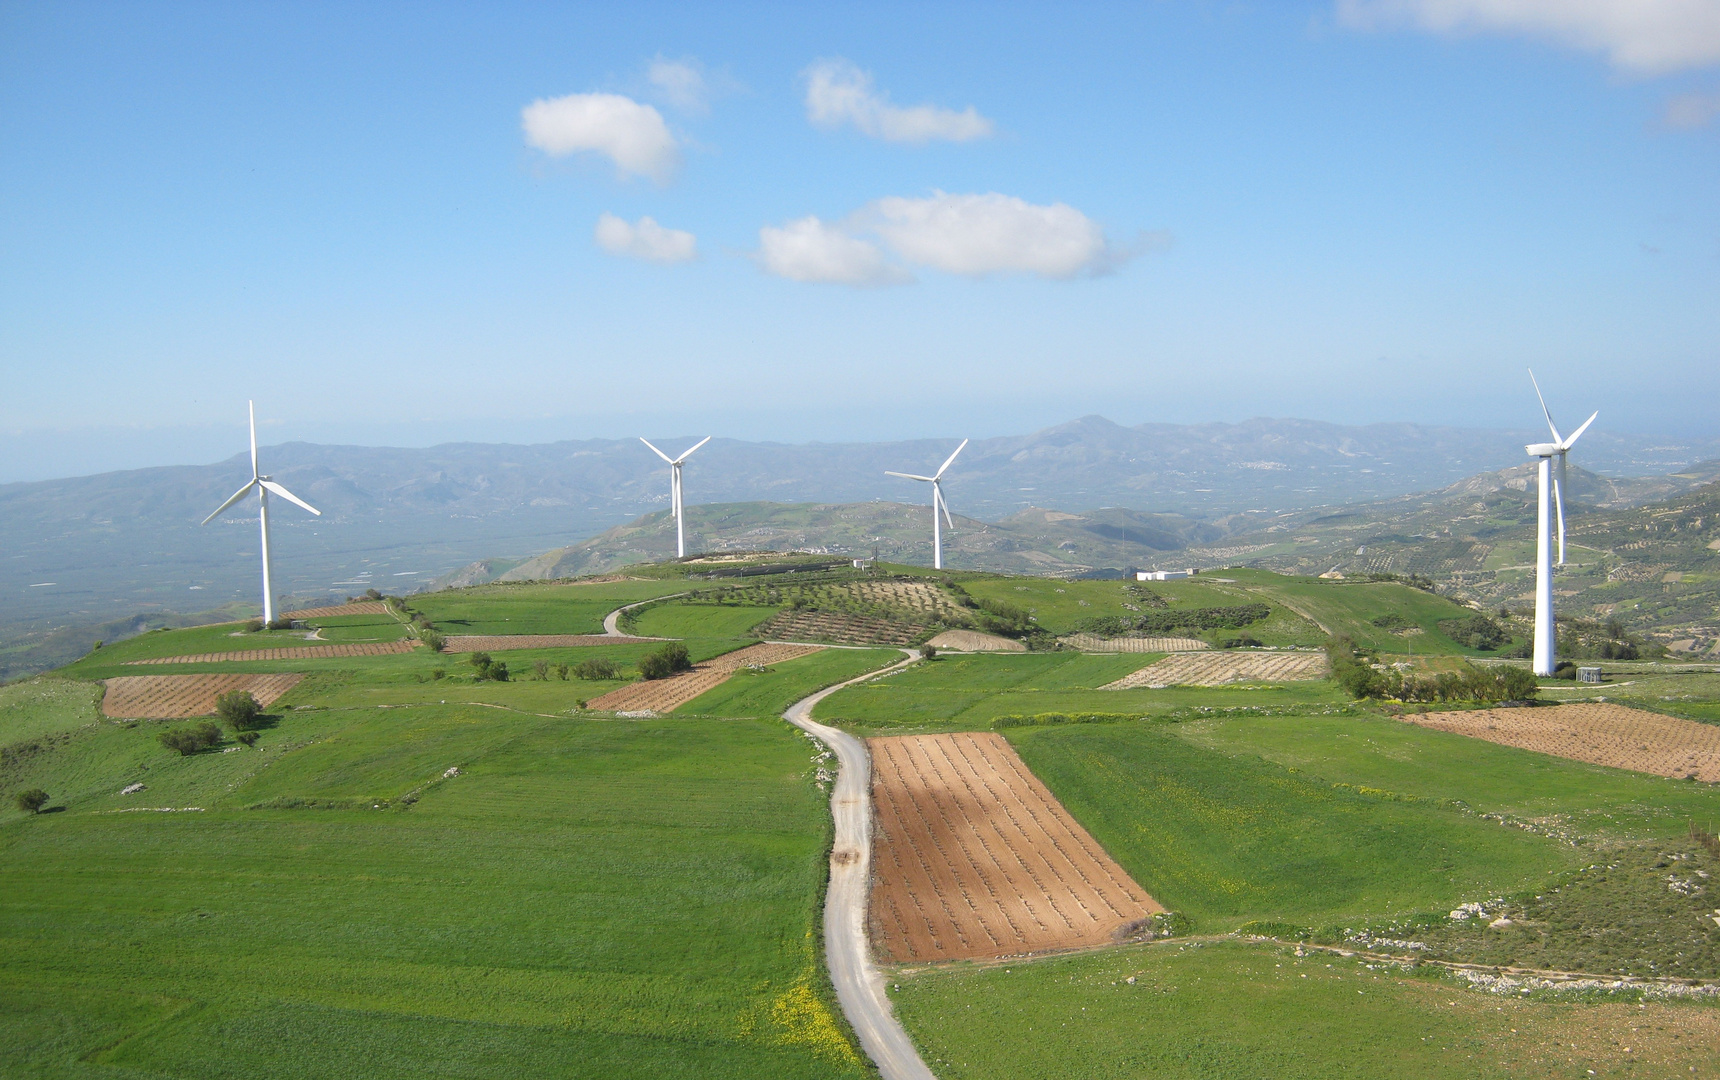 Vineyards & Wind Turbines